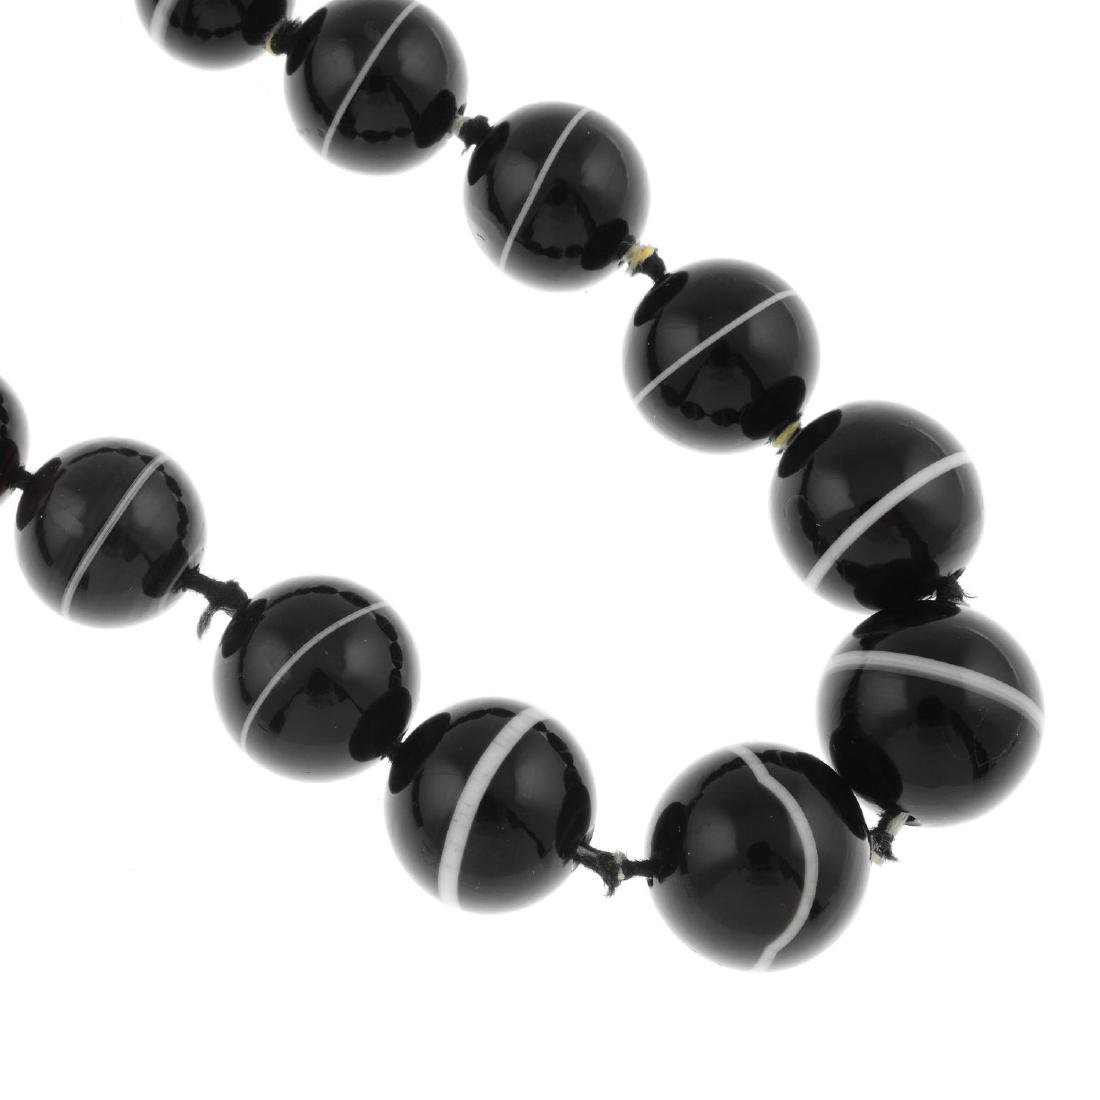 A banded agate bead necklace. The single row of